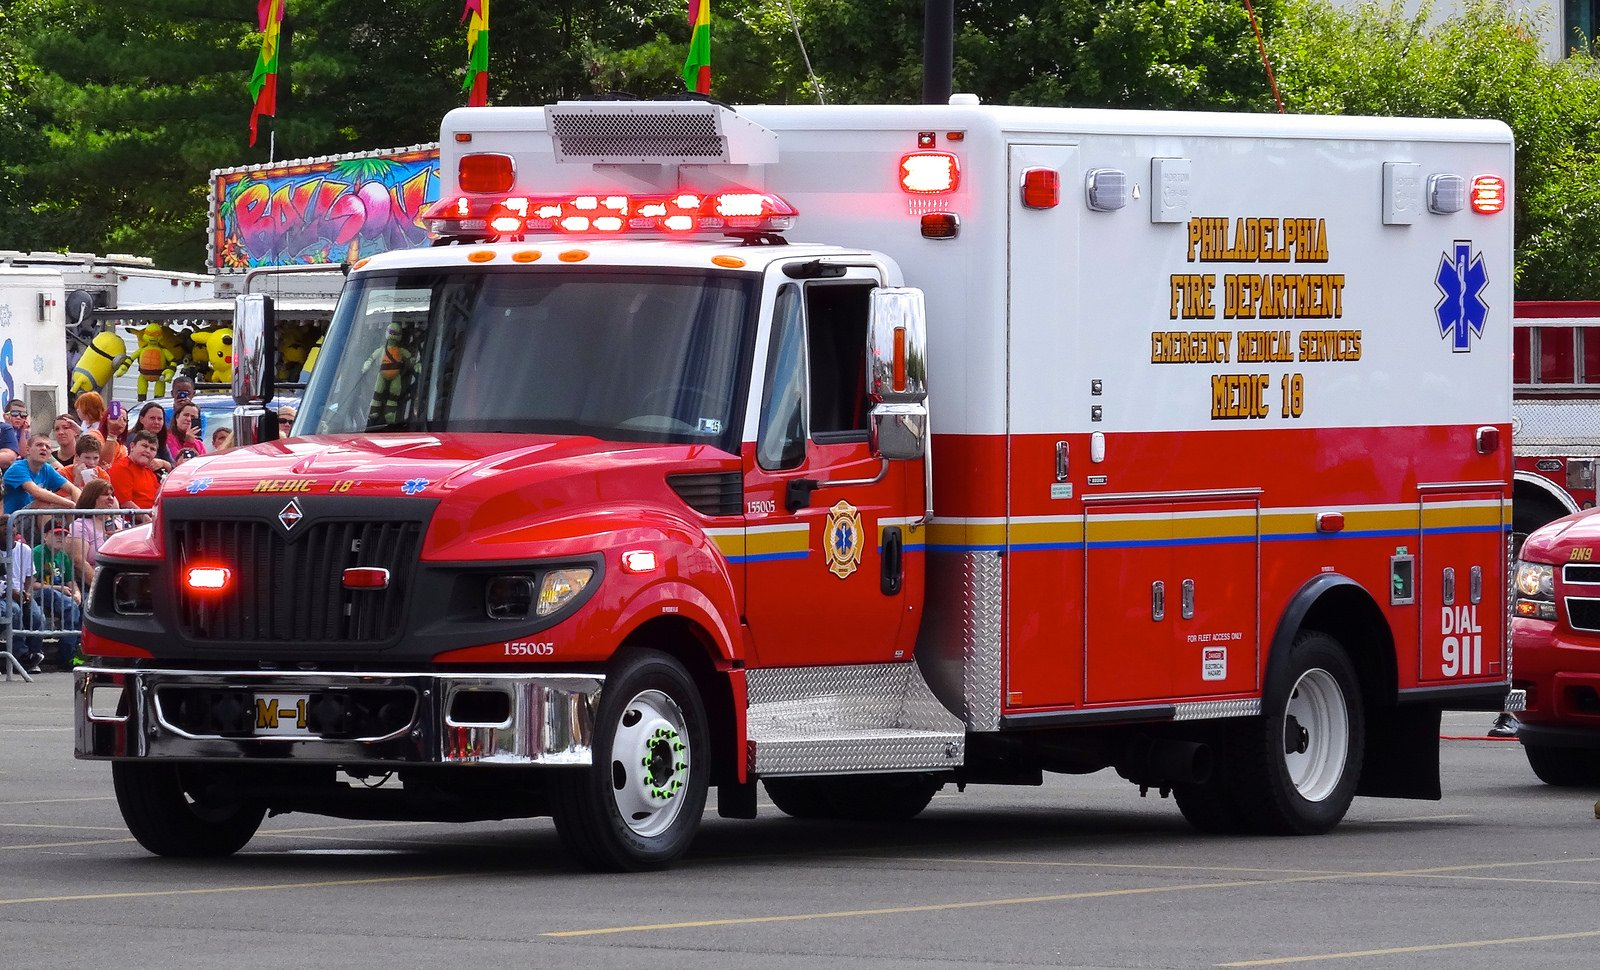 Ambulance fire truck philadelphia fire departments usa rescue fire ambulance fire truck philadelphia fire departments usa rescue fire truck suv emergency medic cars pompier camion wallpaper 1600x970 464078 wallpaperup voltagebd Images